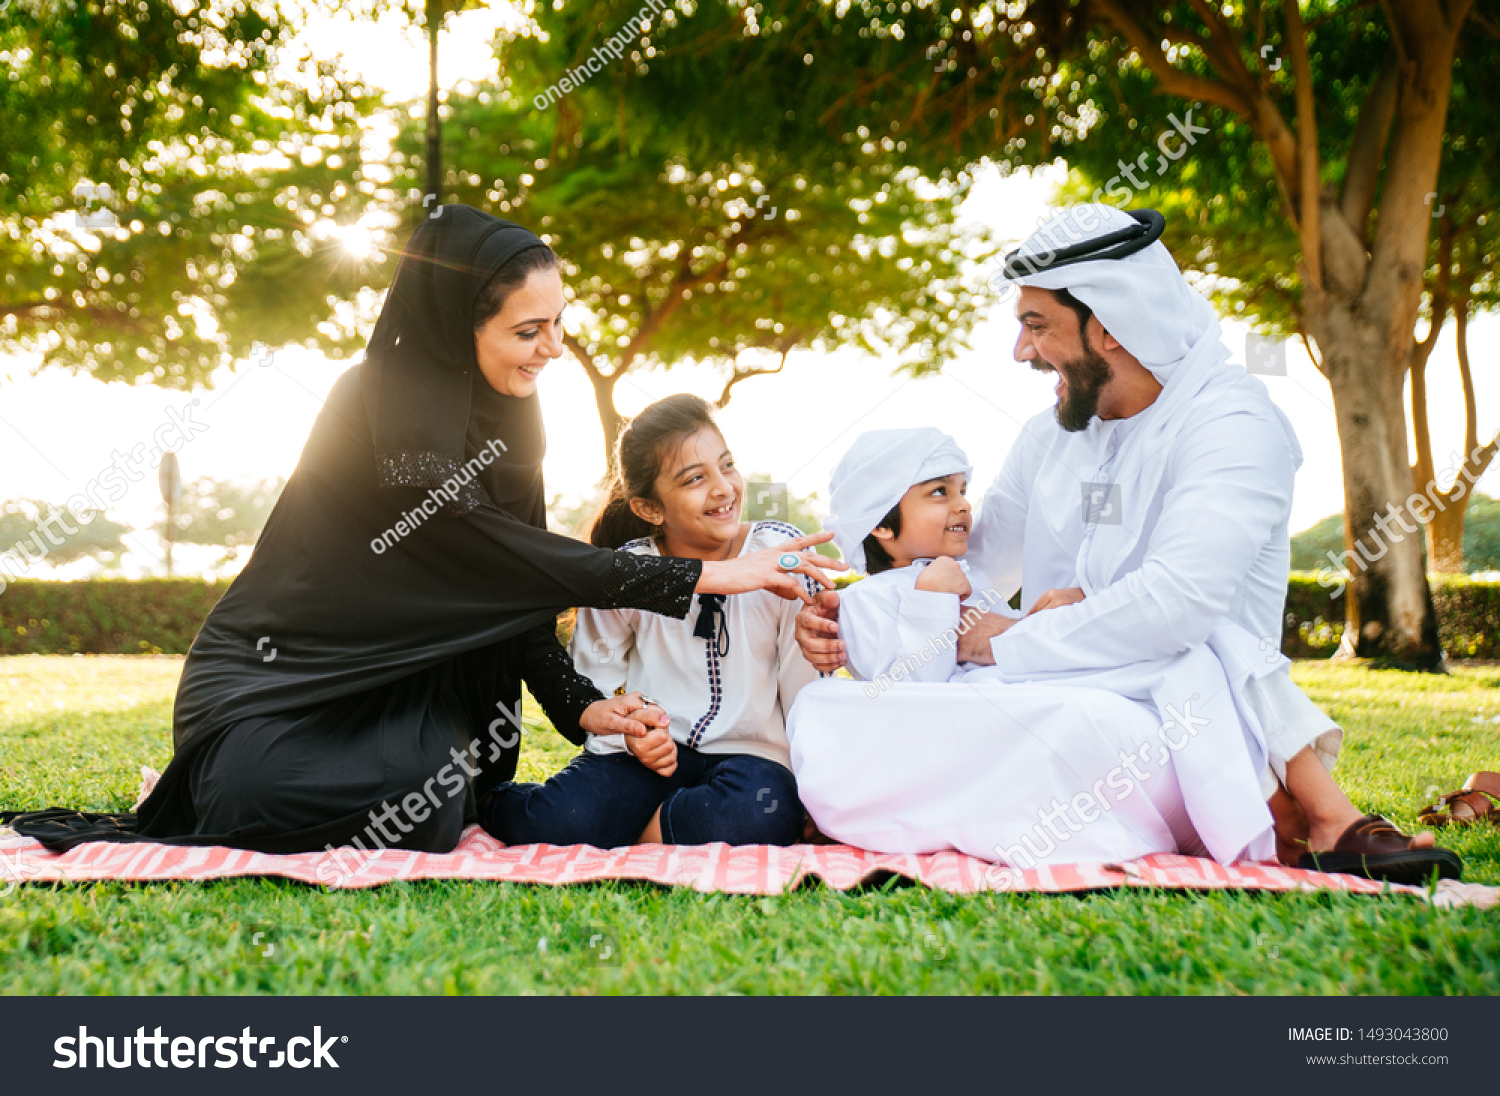 Arabian family spending time in a park #1493043800